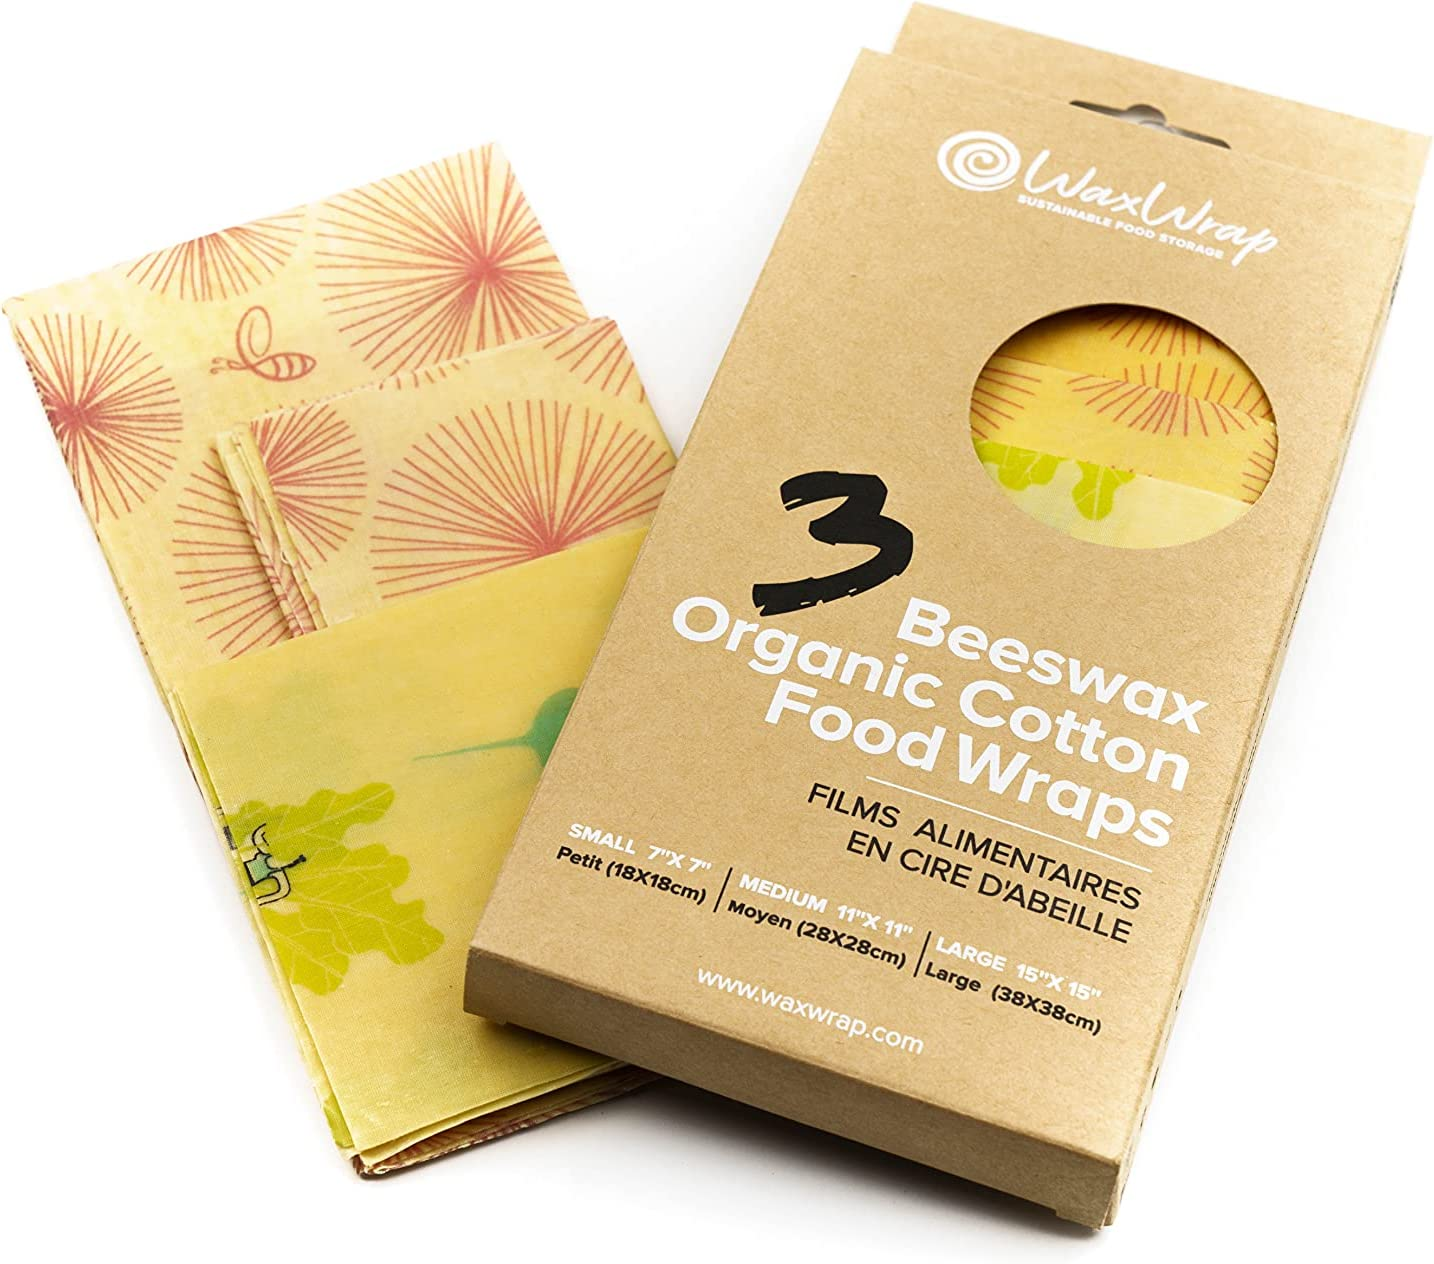 WaxWrap Beeswax Food Wraps – 3Pcs Reusable Food Wrap – Organic Cotton Bees Wax Wrap – Small, Medium, Large|Eco-Friendly – Ideal for Bread Fruit Cheese